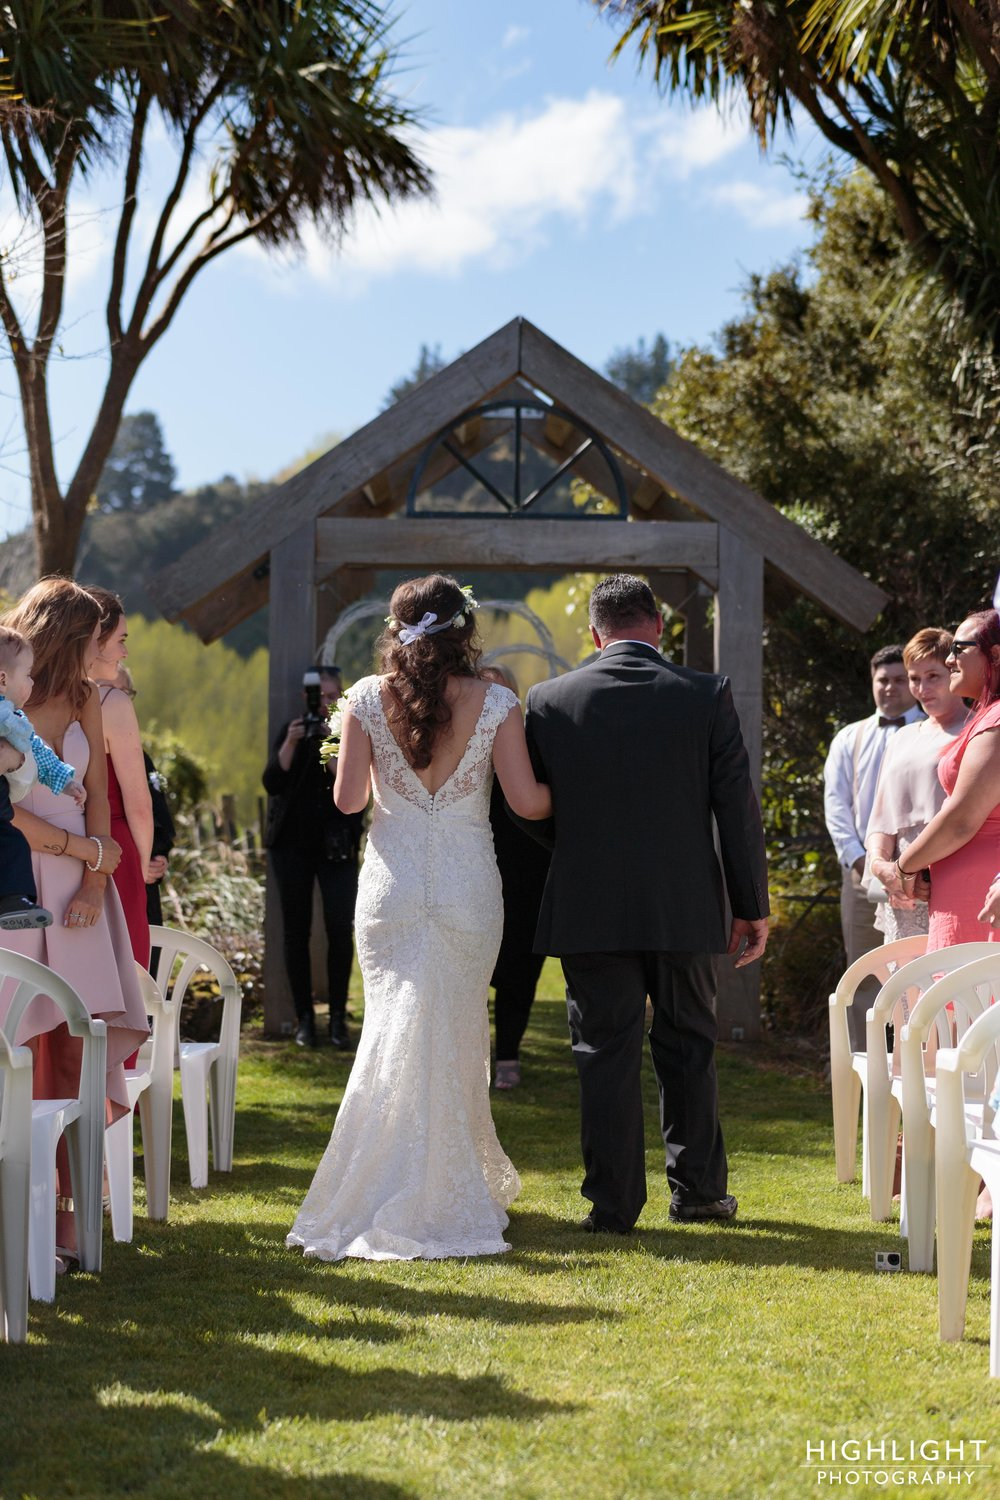 highlight_wedding_photography_makoura_lodge_manawatu_new_zealand-64.jpg